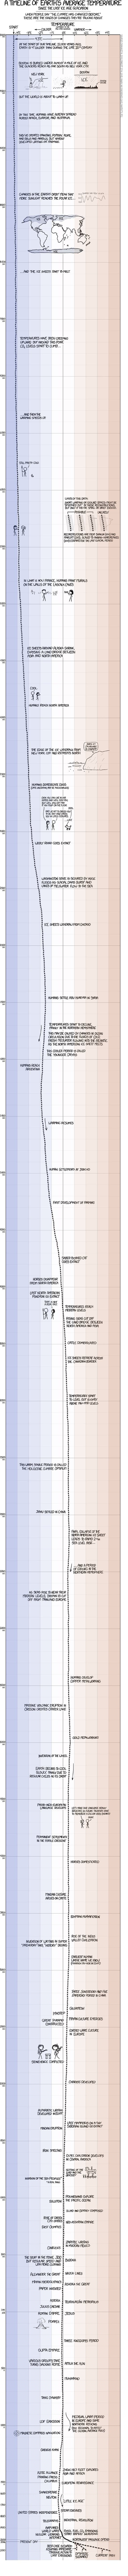 "Randall Munroe, creator of the tri-weekly web comic xkcd, has created a comic that shows just how radical the recent changes are and puts to bed the trope ""the climate has changed before."""